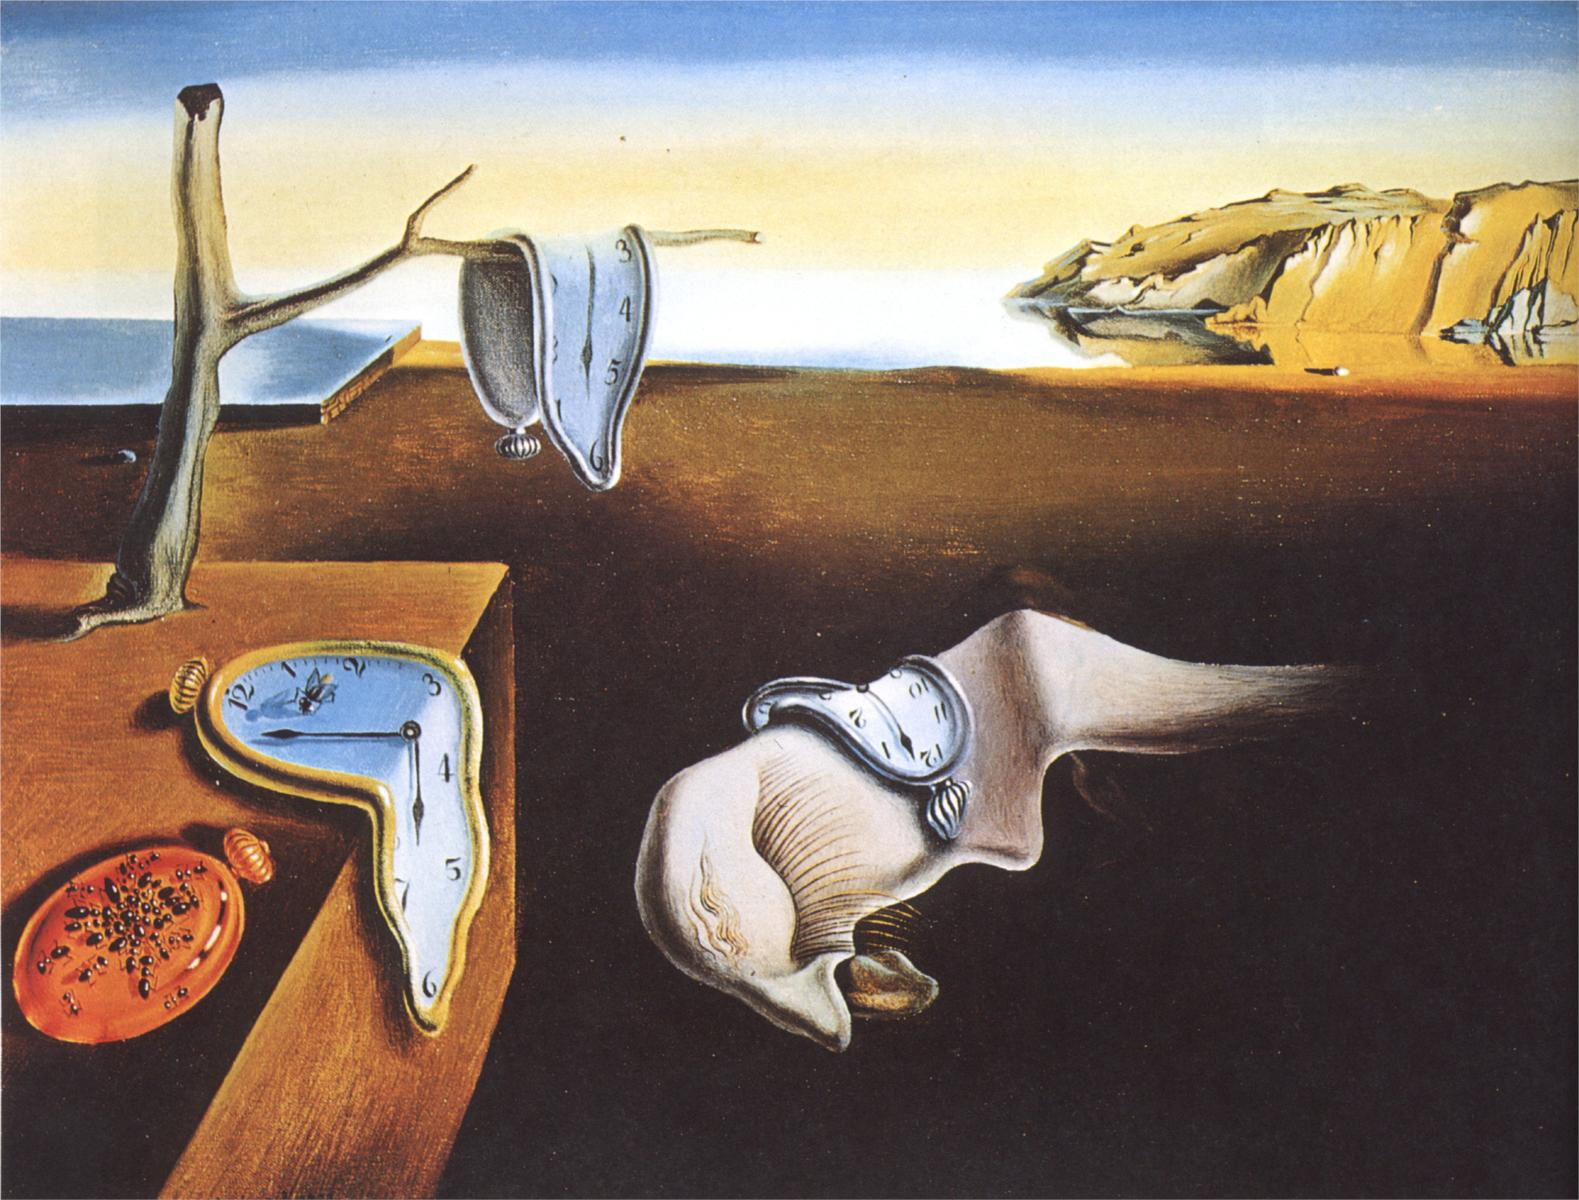 Salvador-Dali-The-Persistence-of-Memory-1931.jpg